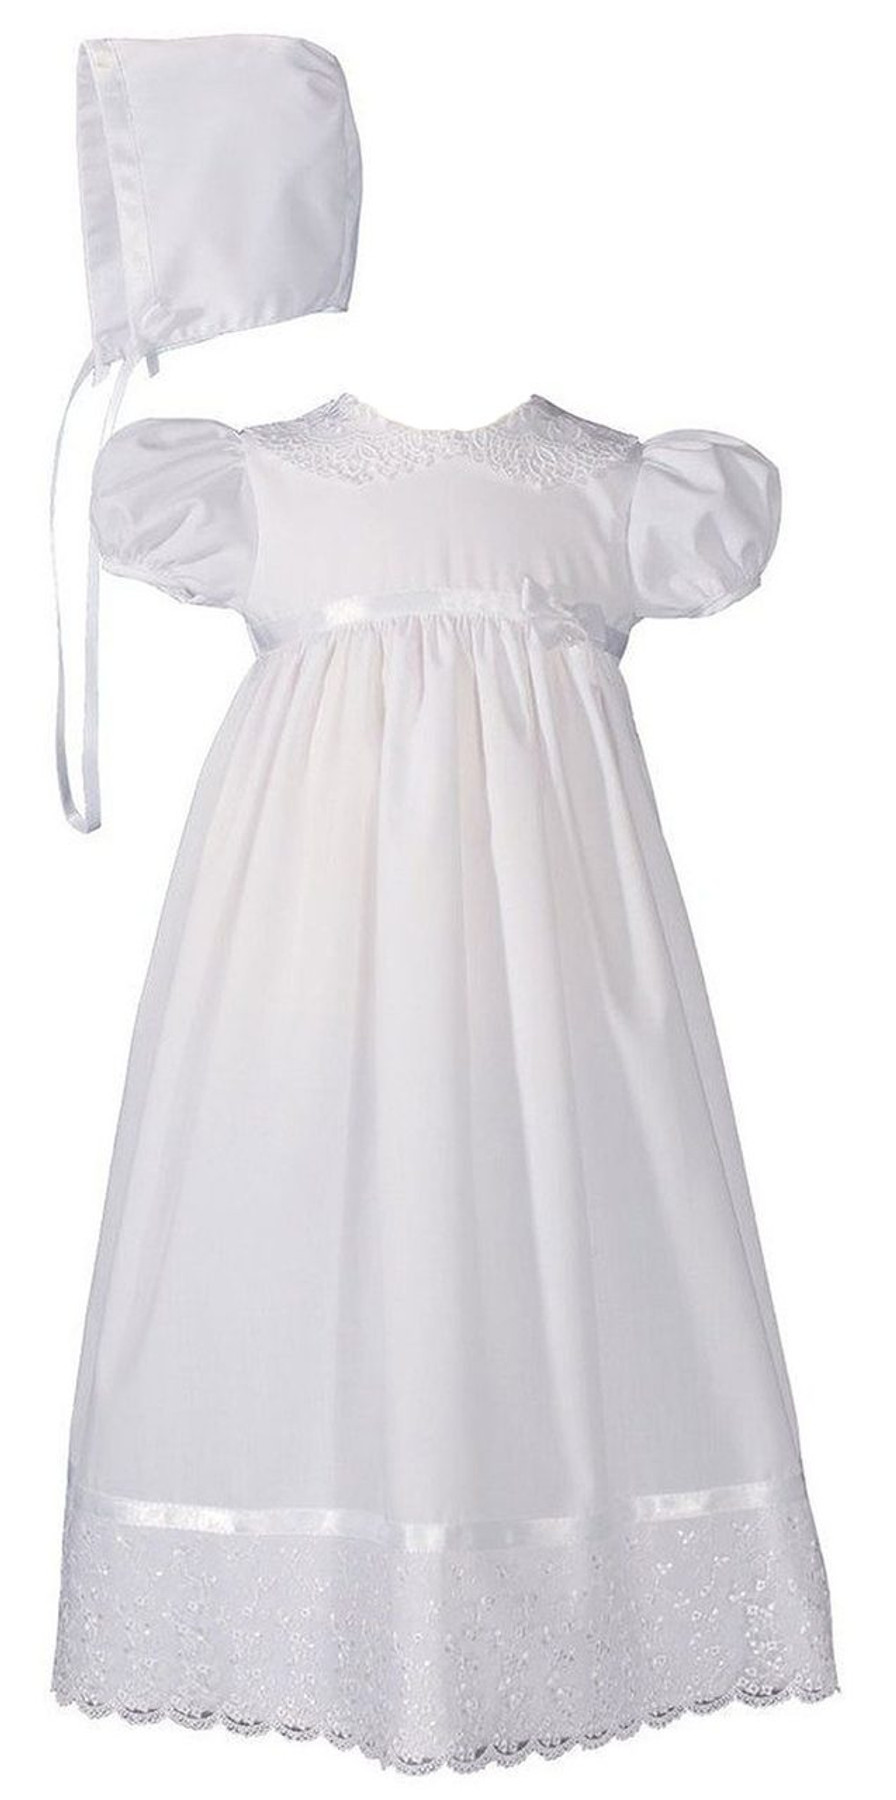 Girls 24″ Poly Cotton Christening Baptism Gown with Lace Collar and Hem